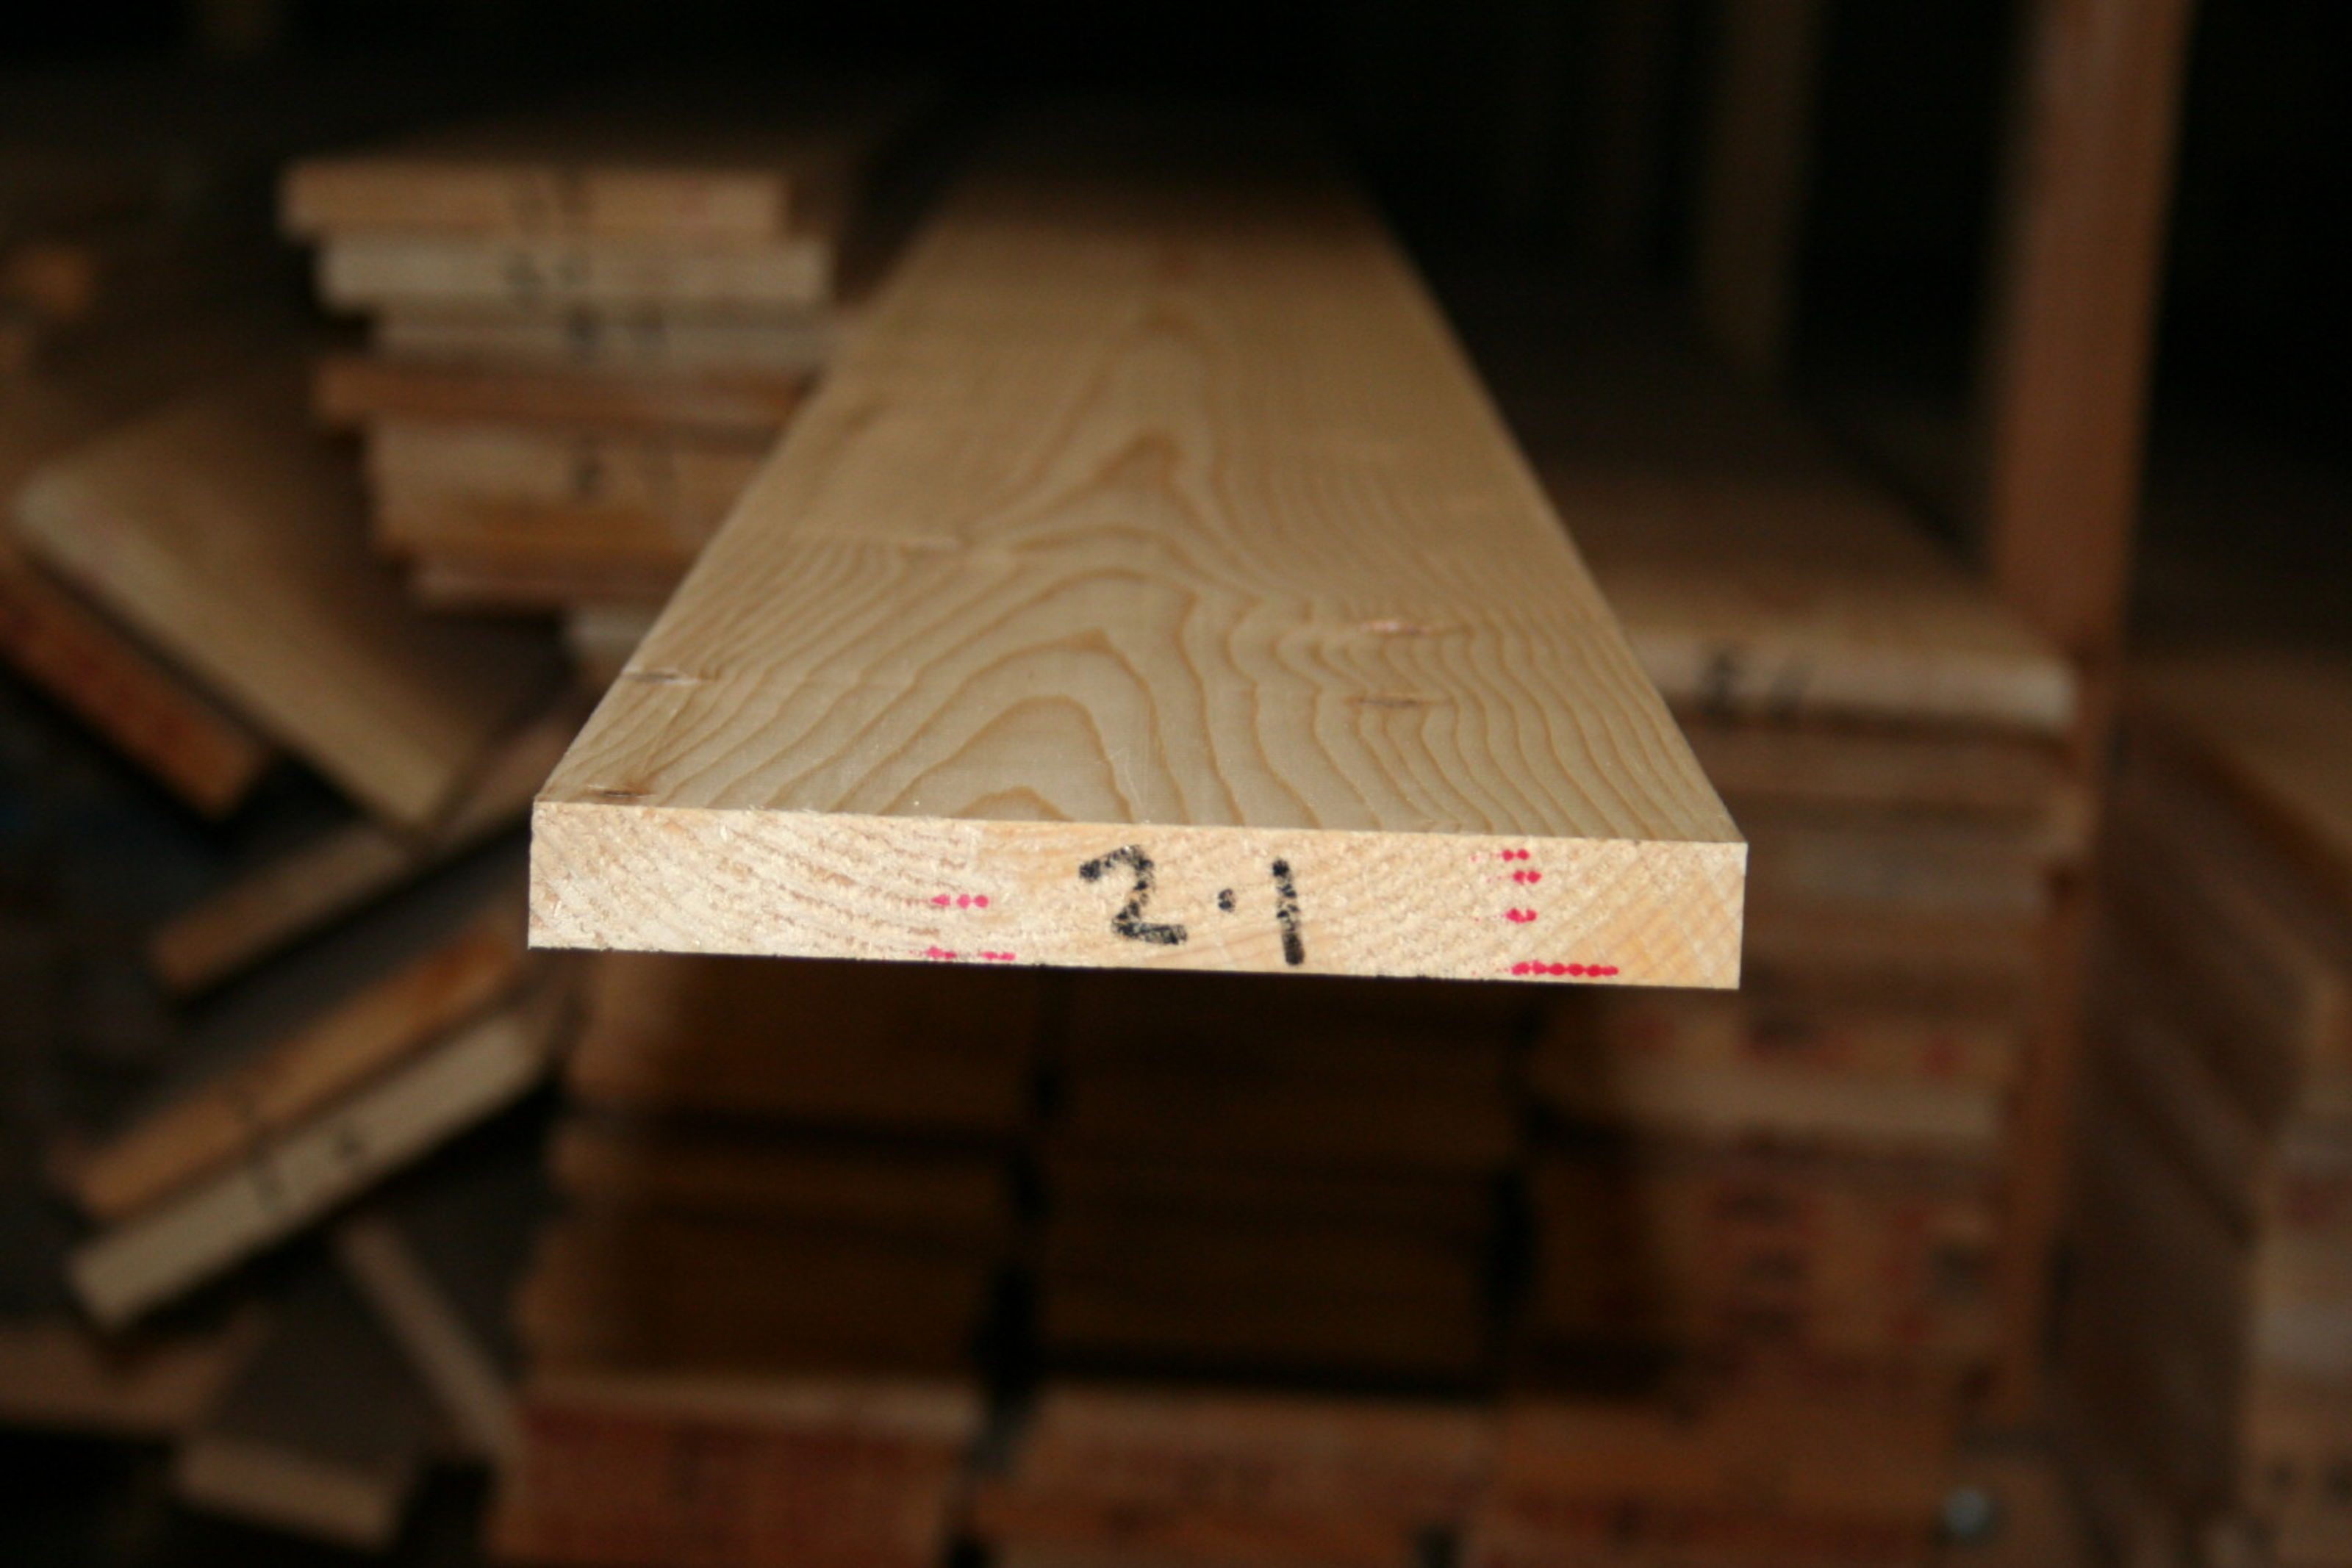 Pine 6x1 PSE Whitewood Timber Length